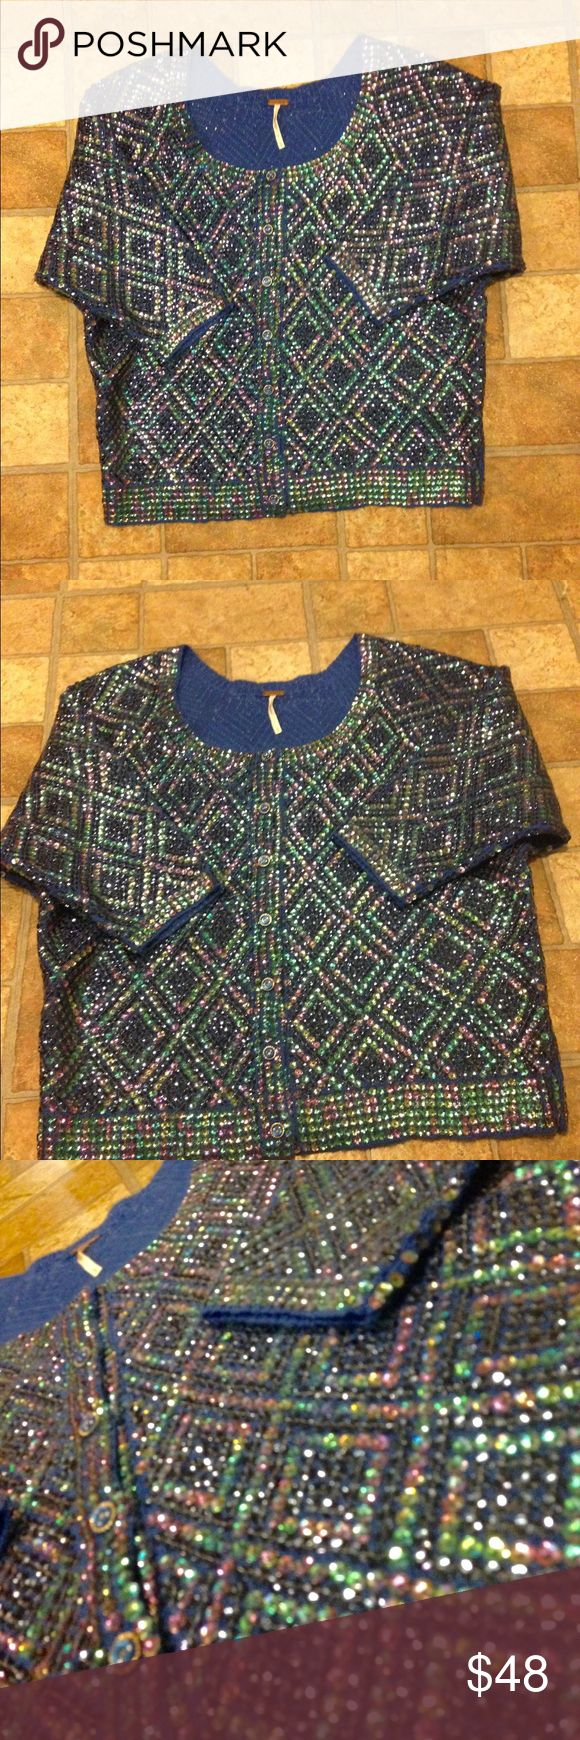 Free People Bedazzled Sequined Cardigan NWOT This blue purple and green bedazzled sequined cardigan from Free People is Siri gypsy chic. It is new without tags. The material is made out of 70% acrylic and 30% wool. The measurements are sleeve 18 inches length 20 inches bus 19.5 inches. Free People Sweaters Cardigans